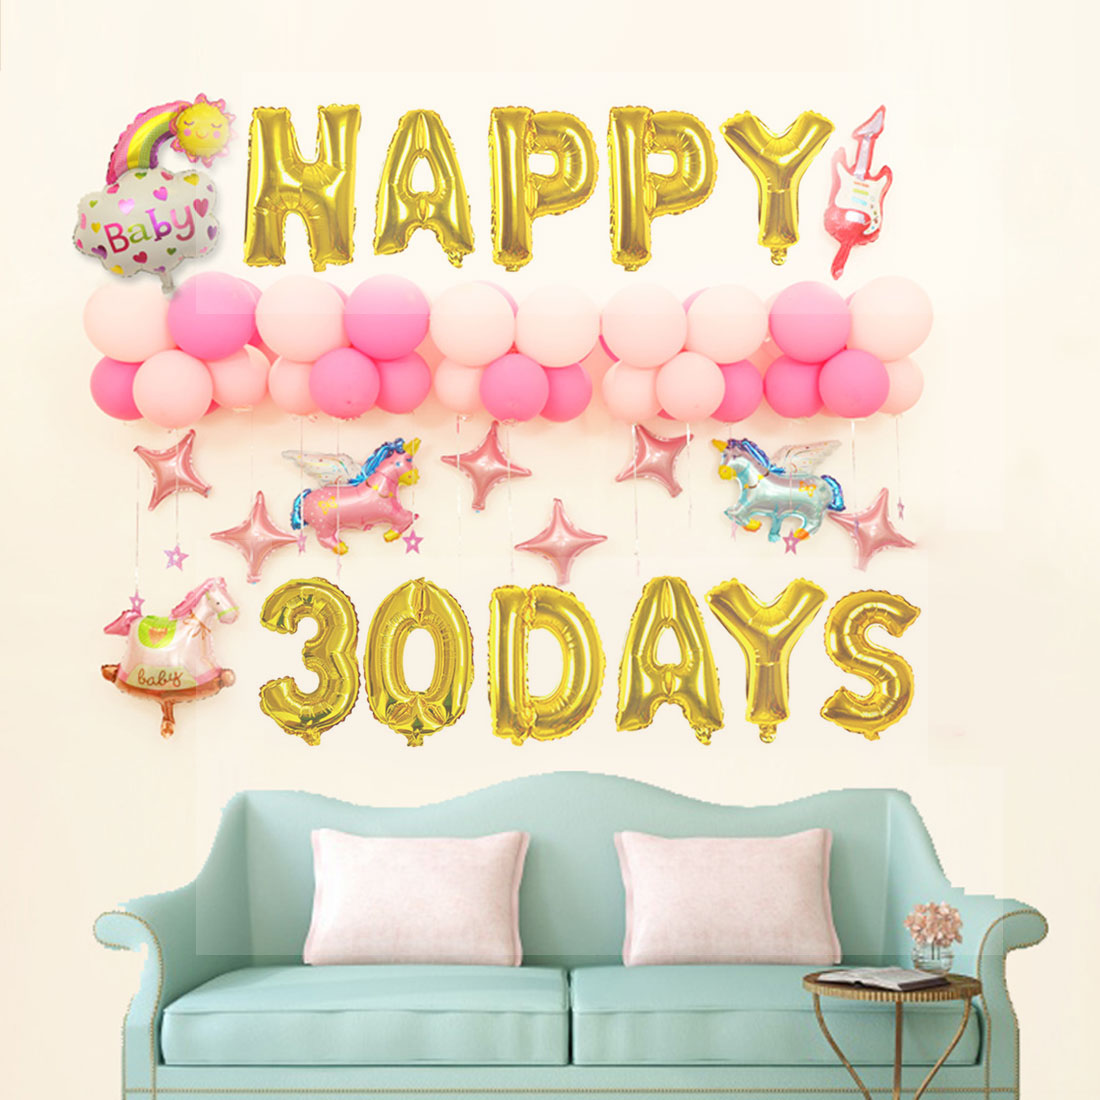 Party Decoration 16 Inch Foil Letter Balloons Gold Silver HAPPY ...